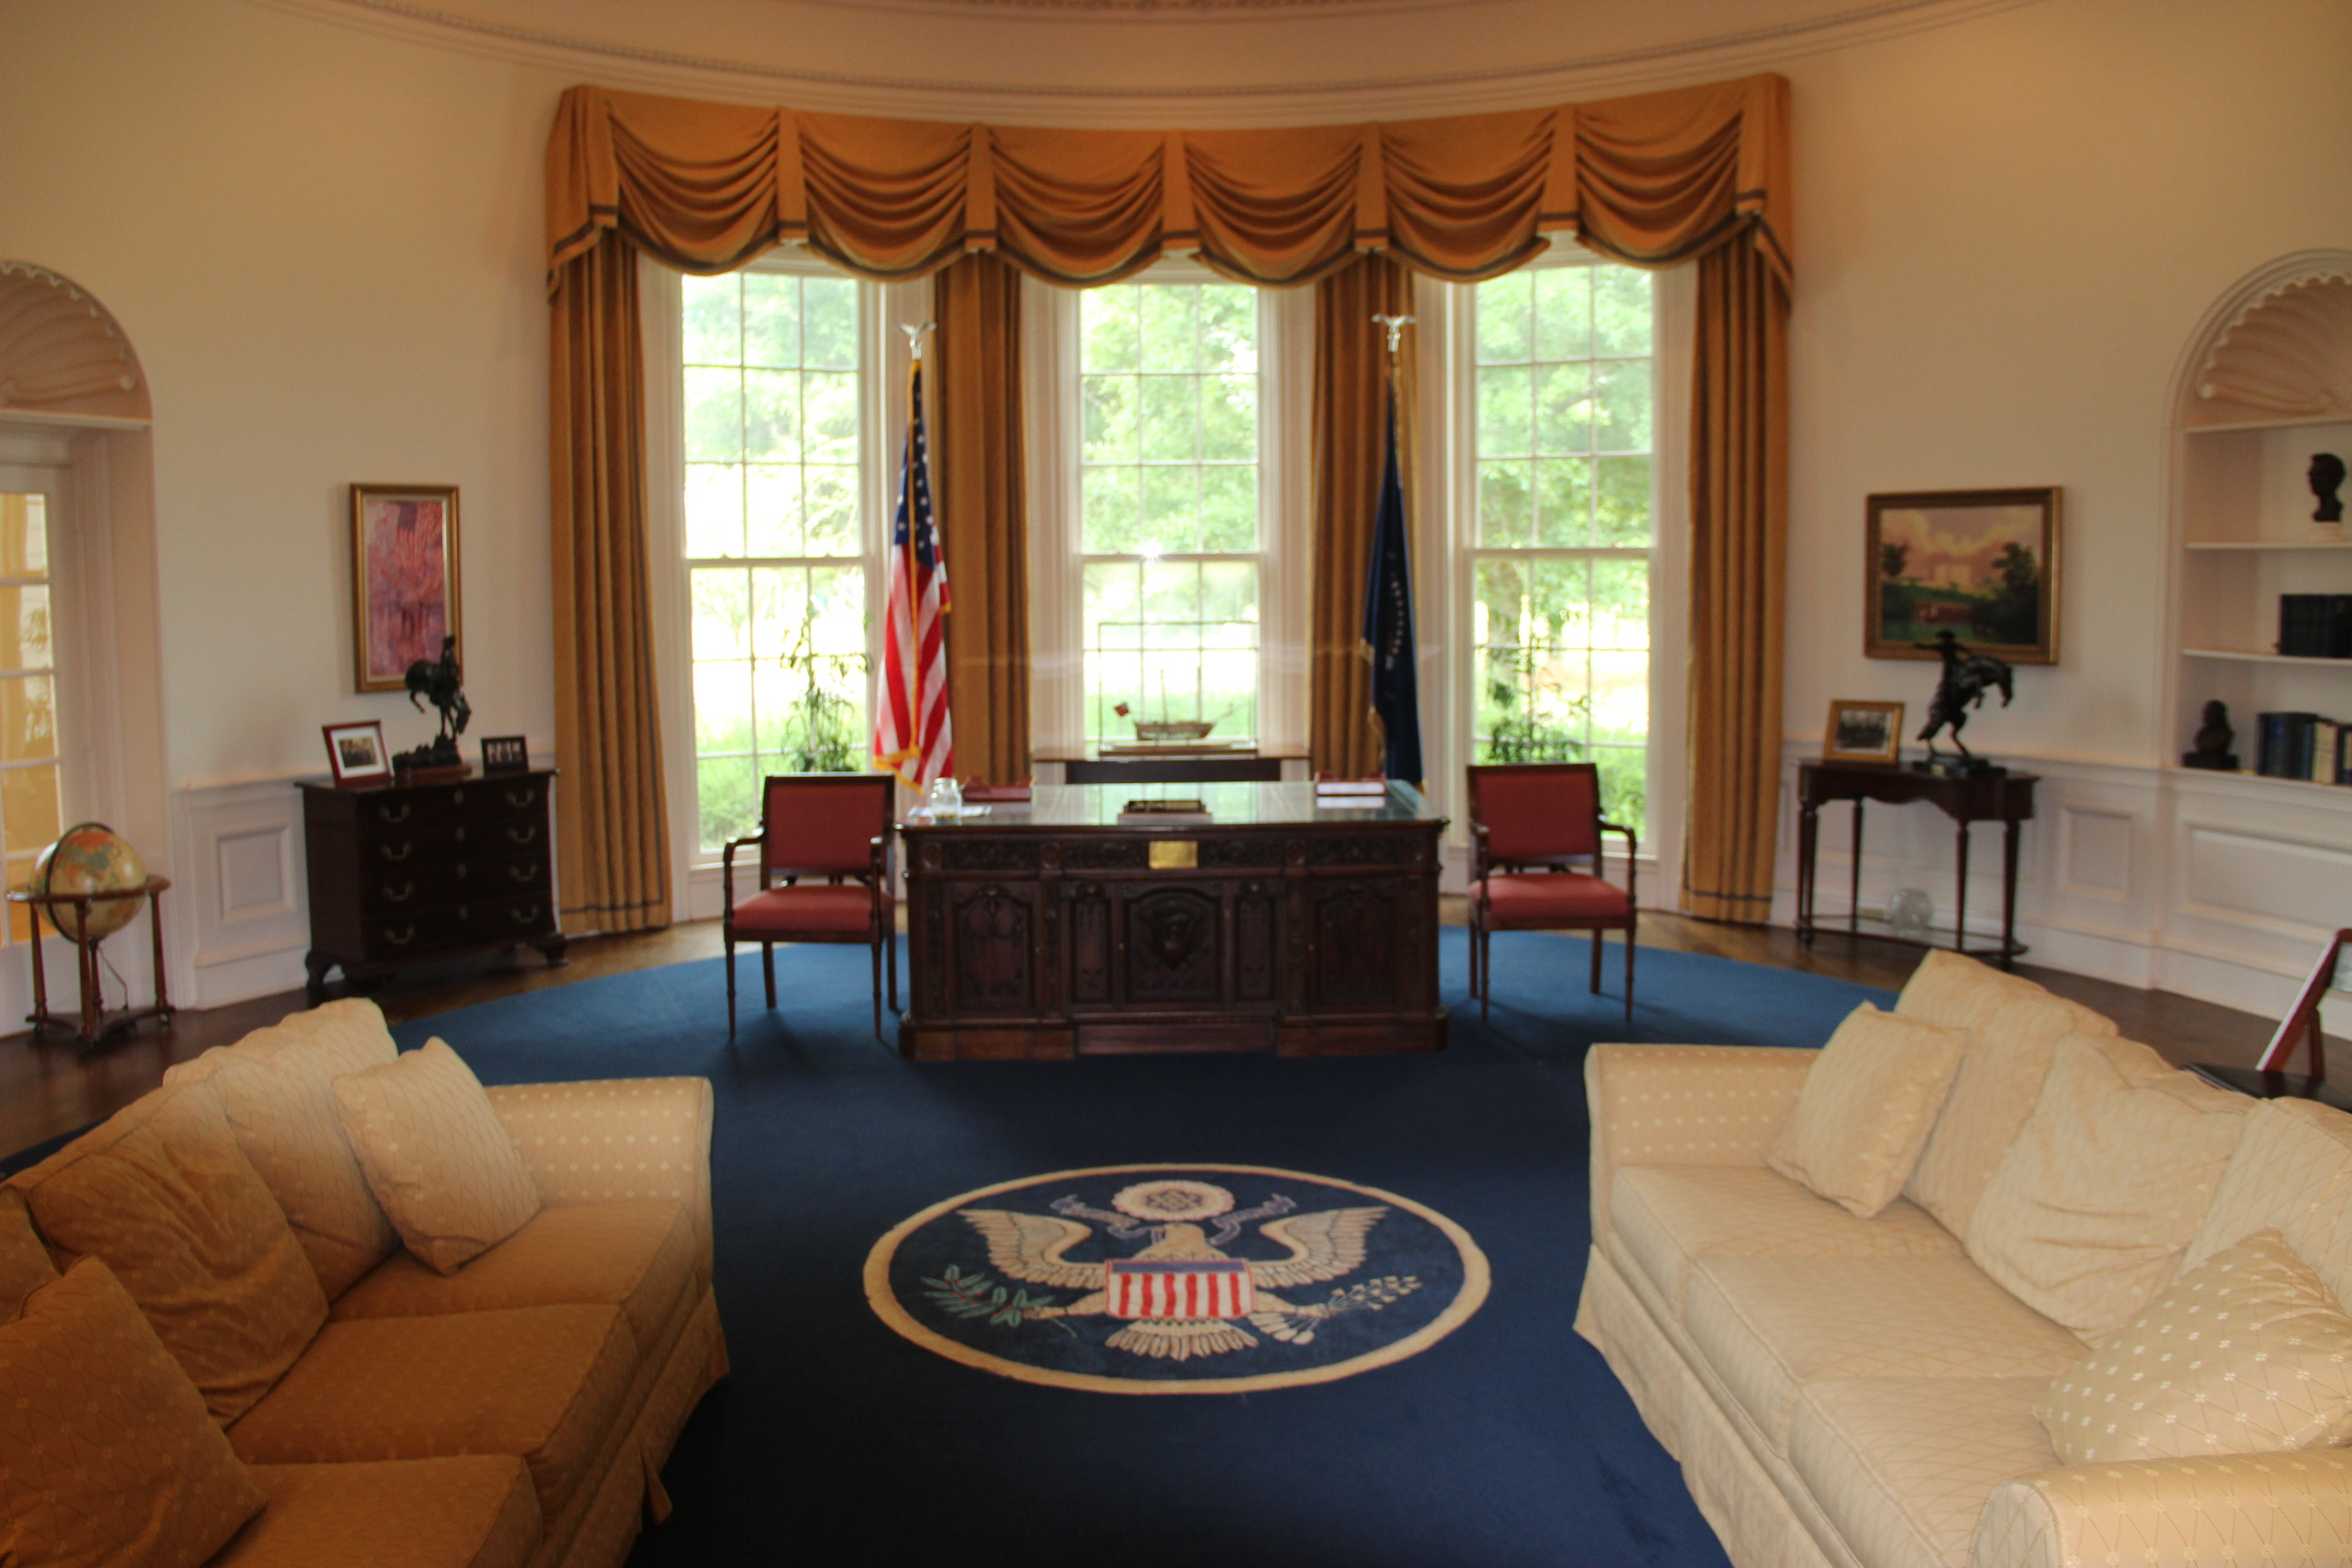 Image of inside the Oval Office at the American Village in Montevallo